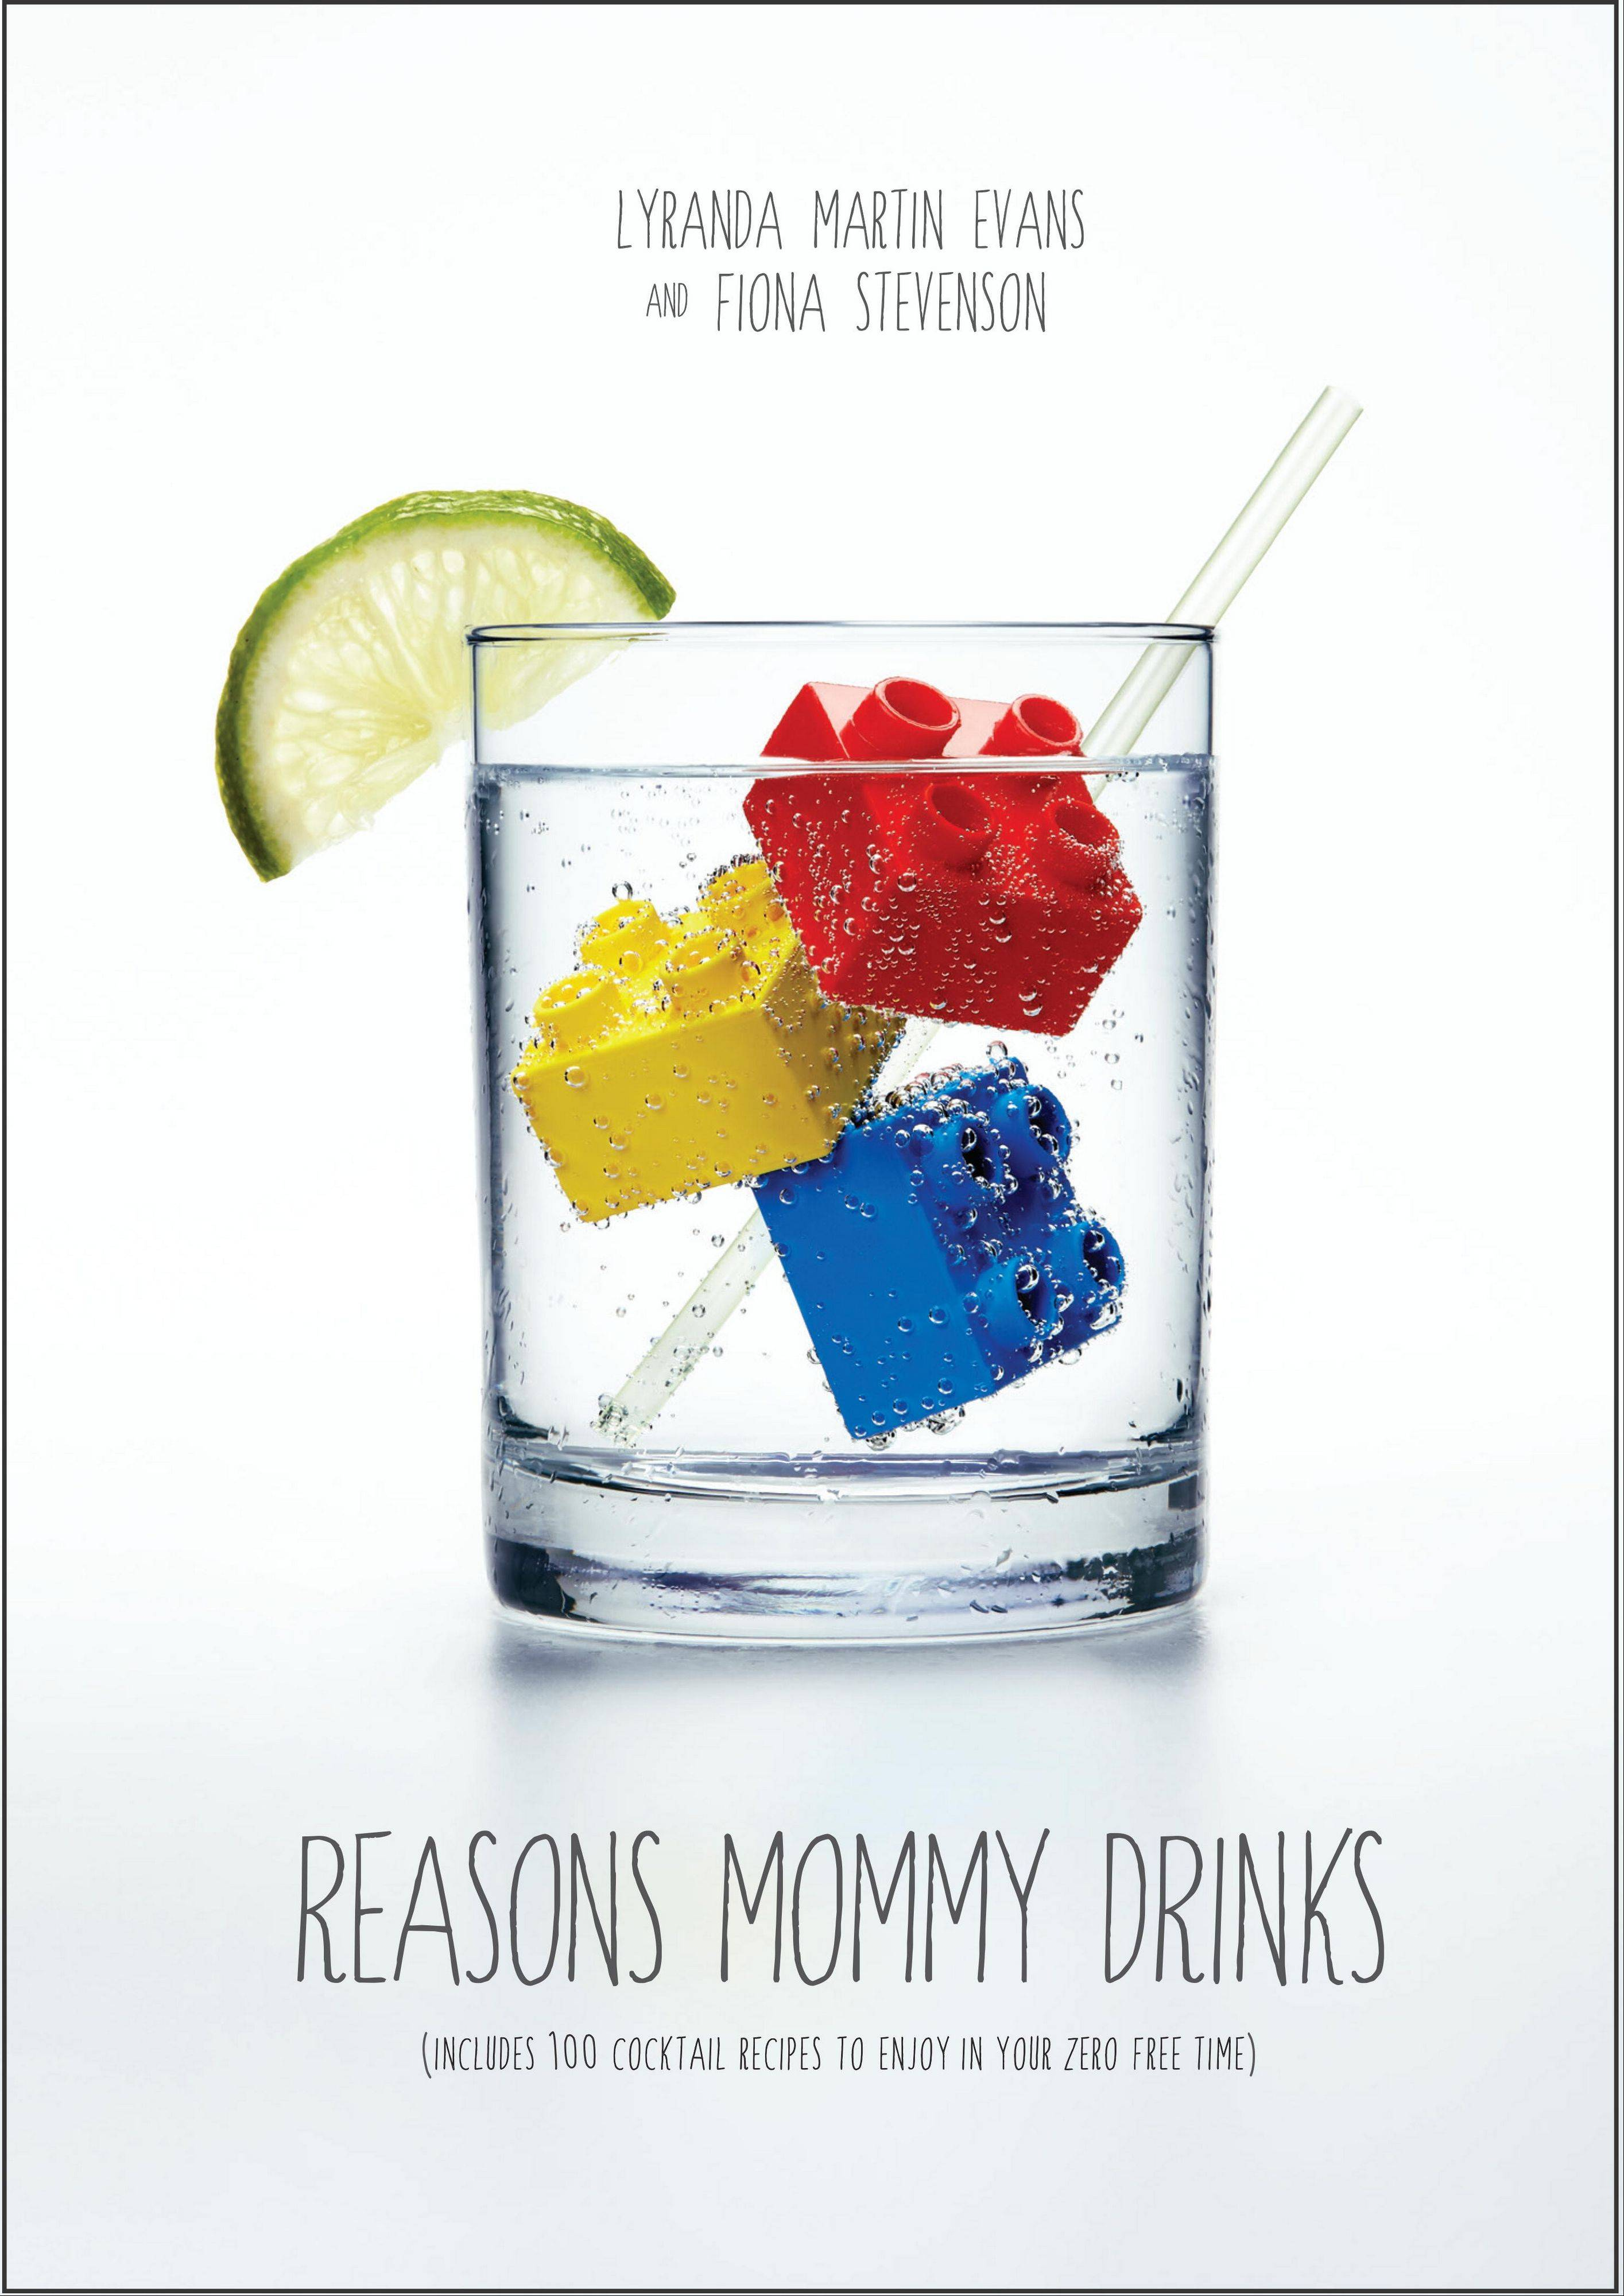 """Reasons Mommy Drinks"" by Lyranda Martin Evans and Fiona Stevenson"